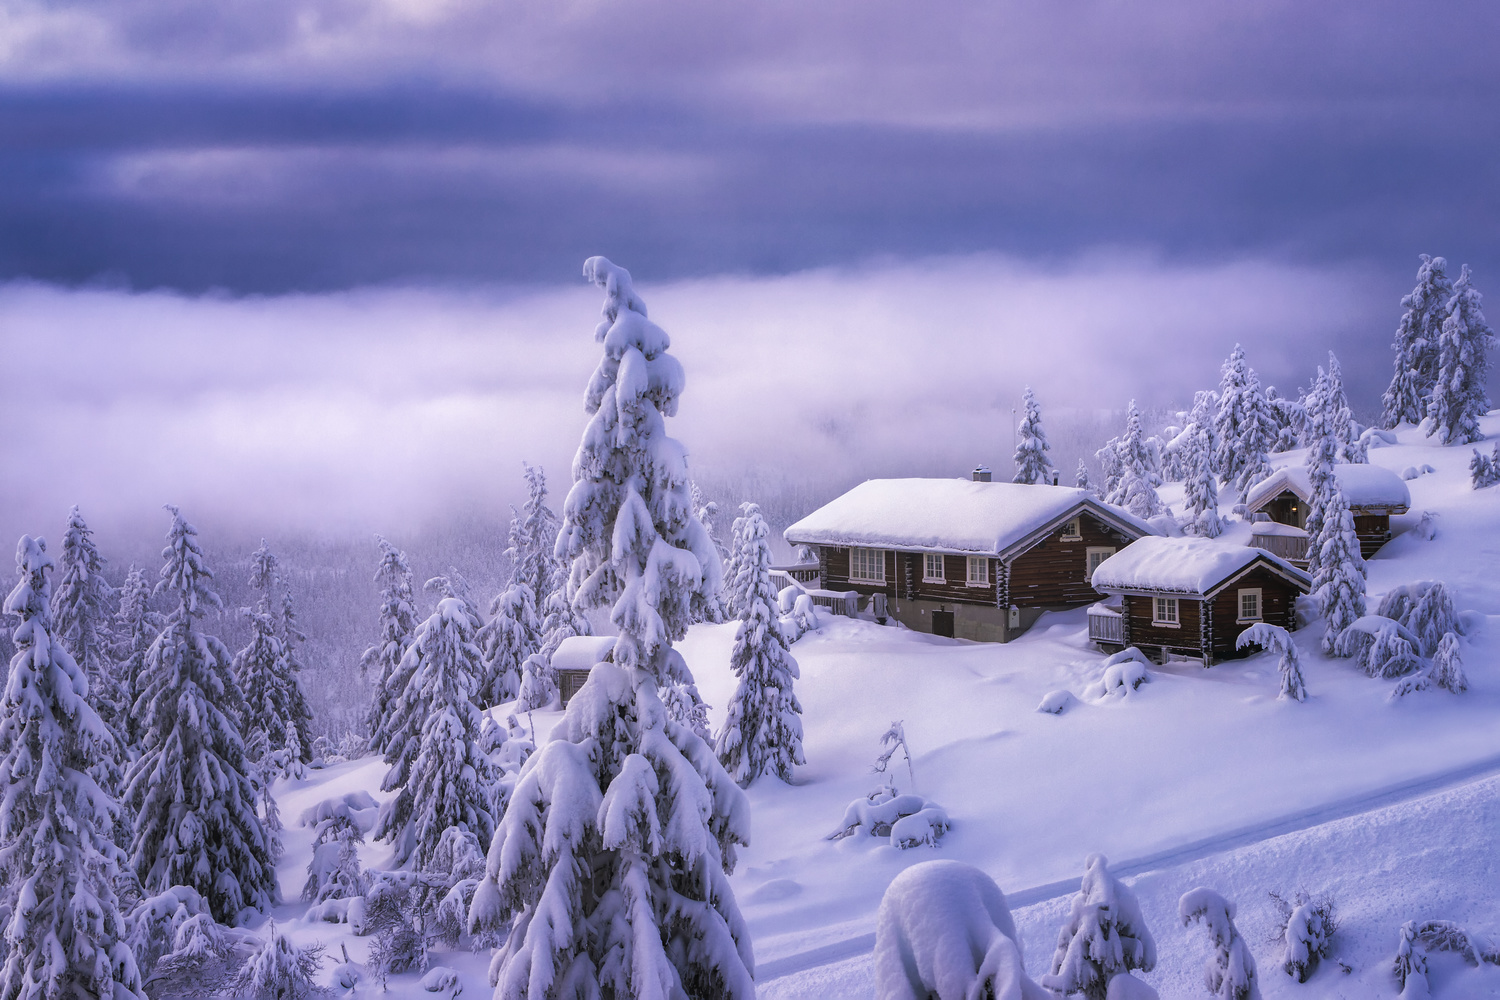 It's a winterful life by Rickard Eriksson